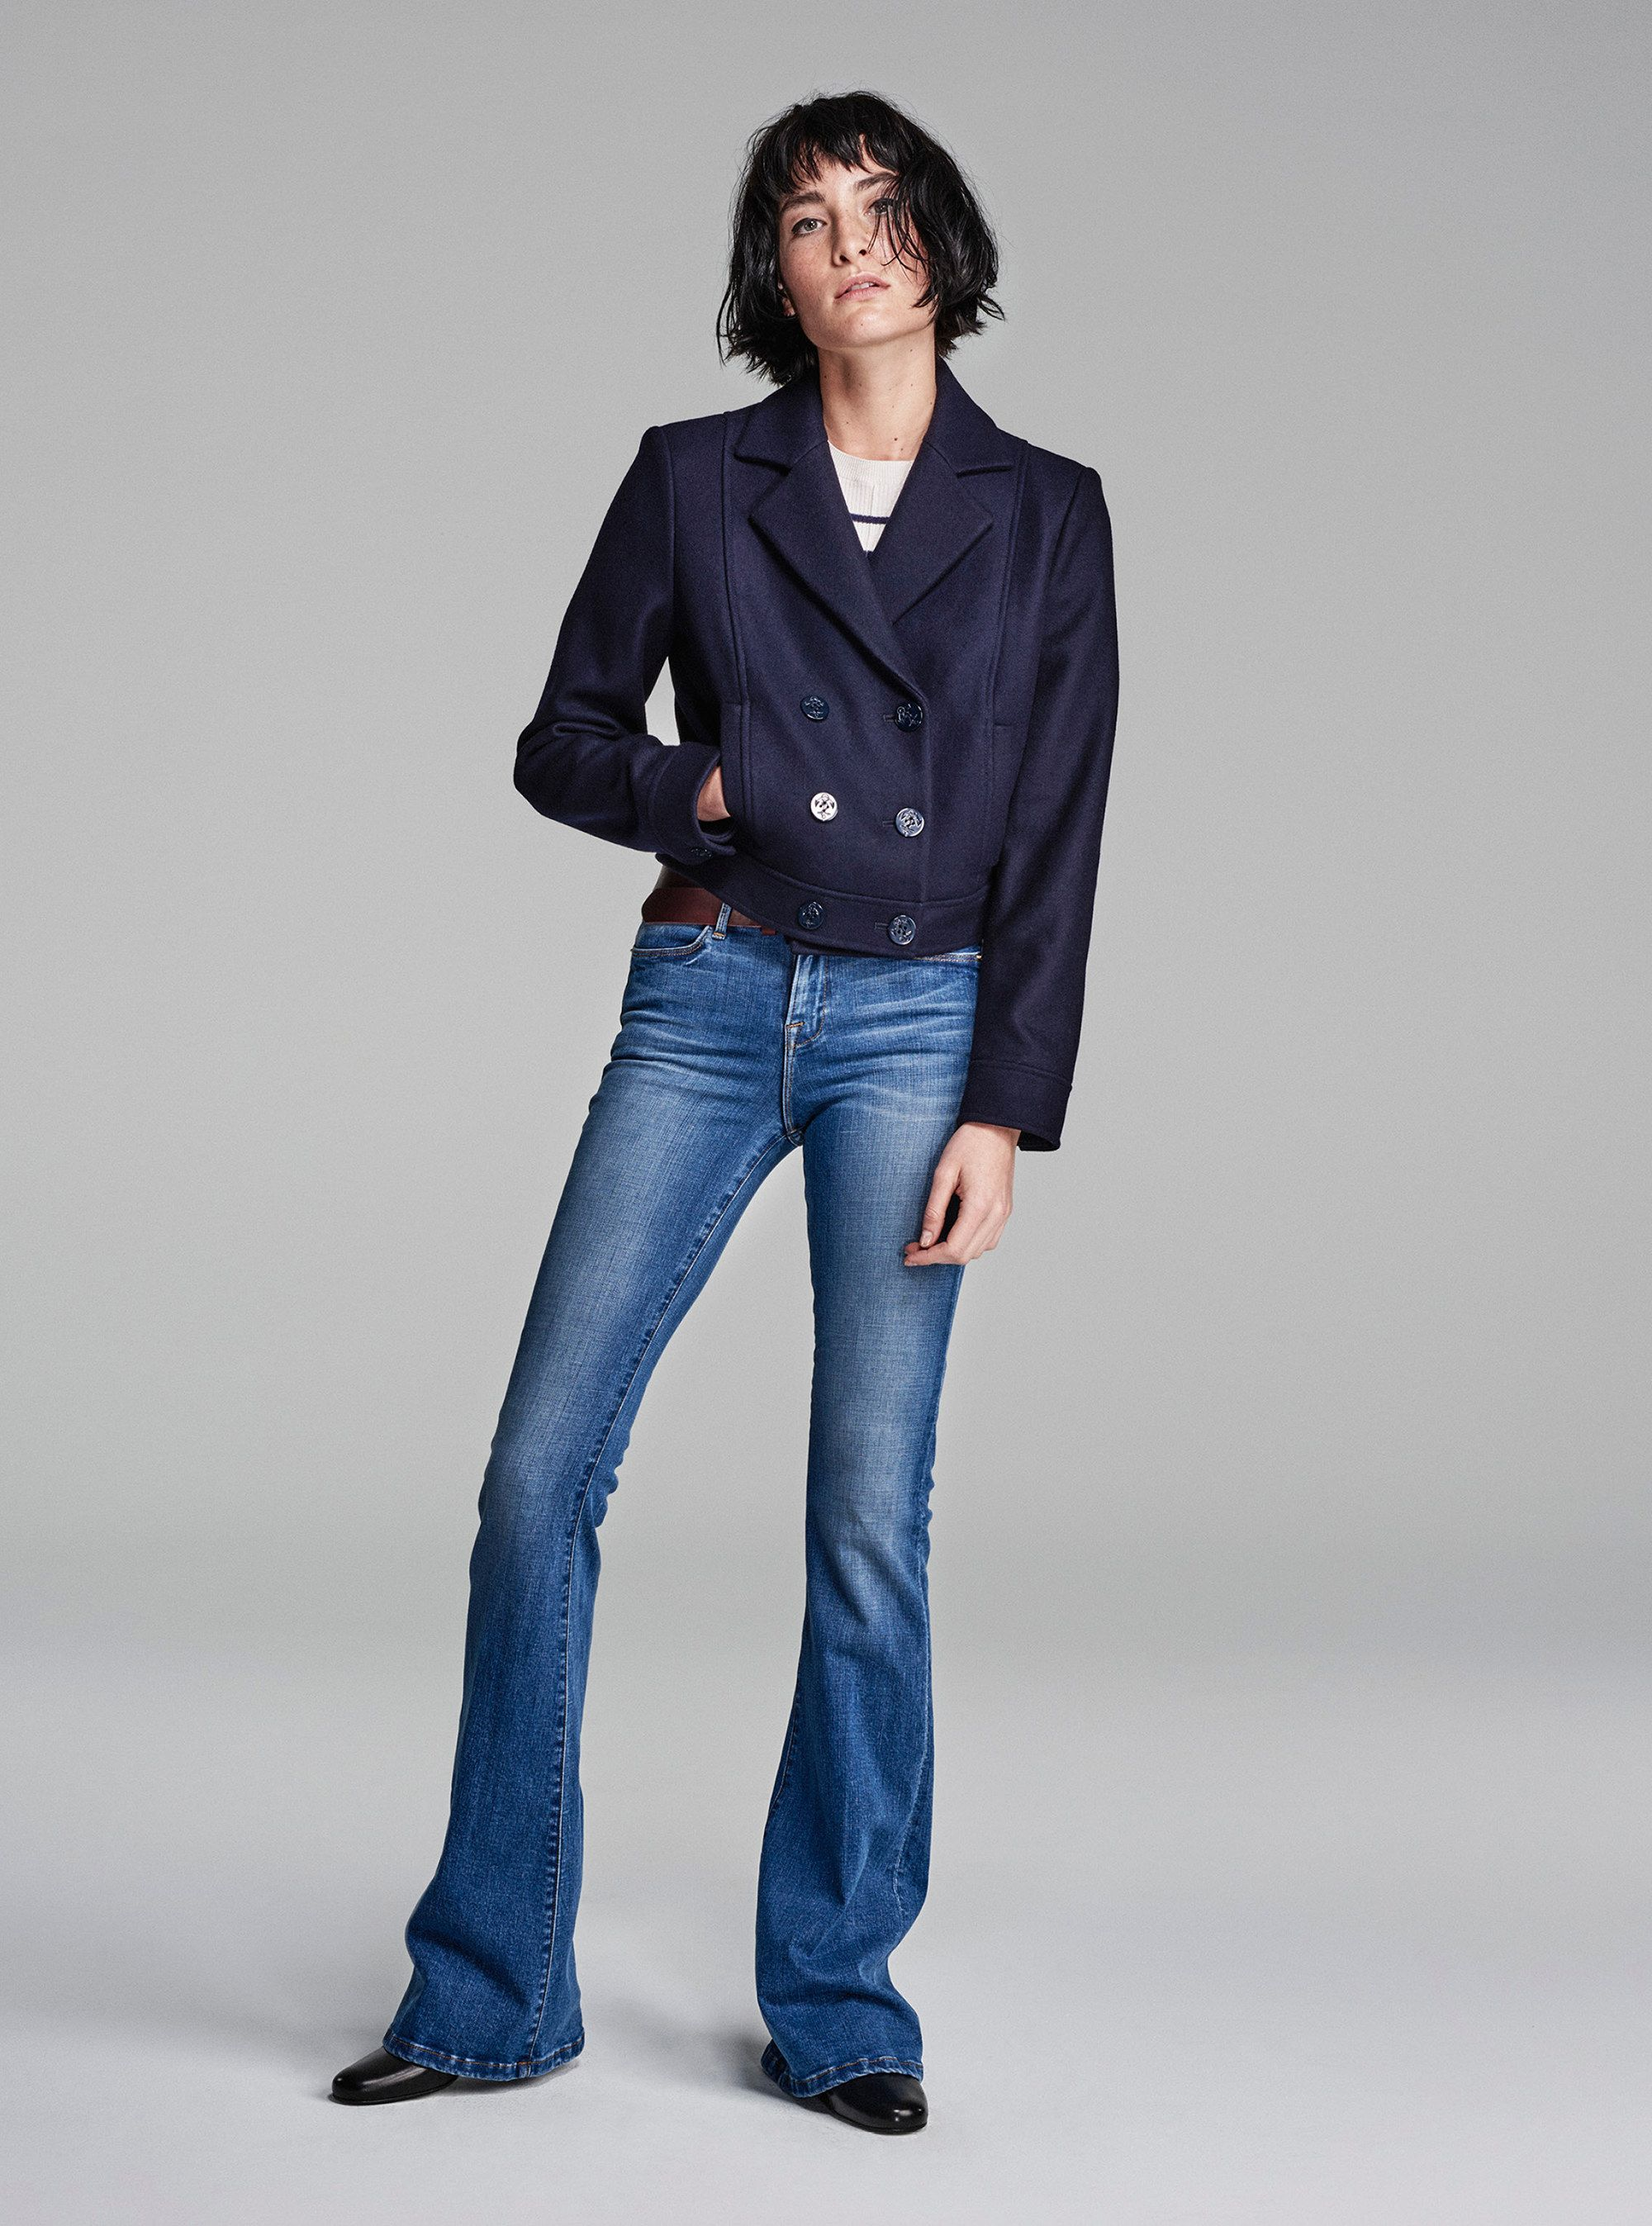 Frame Denim Fall 2016 Ready-to-Wear Collection Photos - Vogue